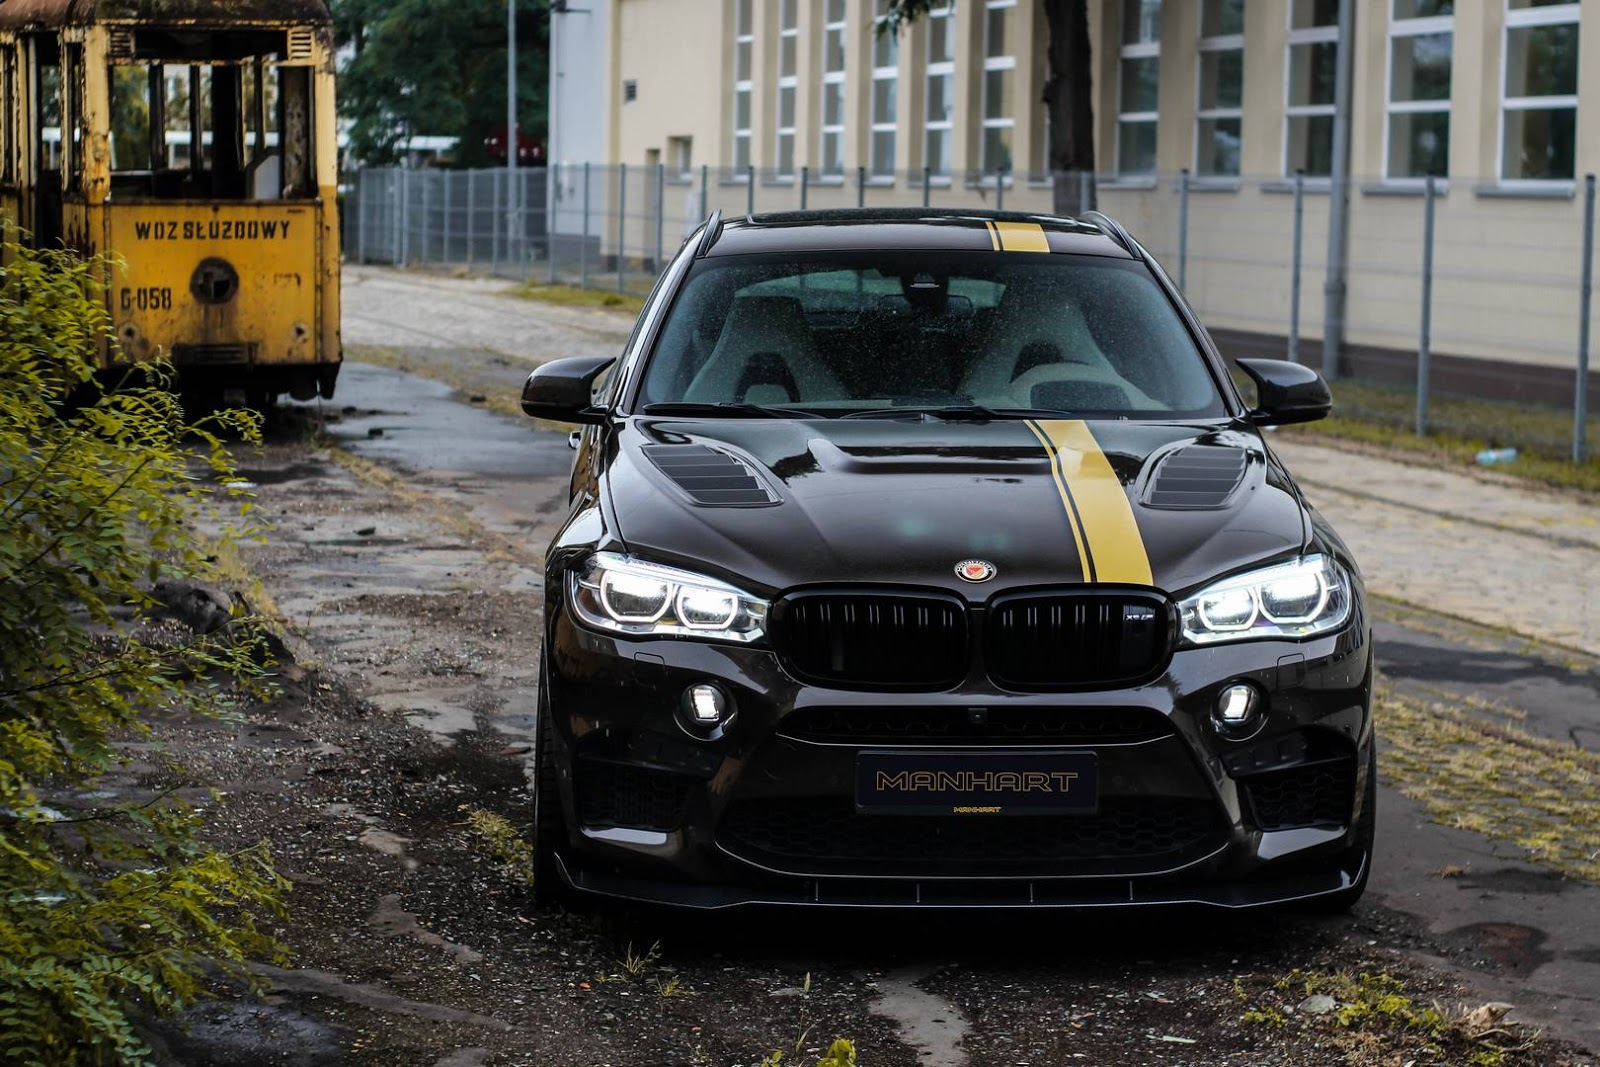 Manhart S Mhx6 800 Actually Makes The Bmw X6 Desirable